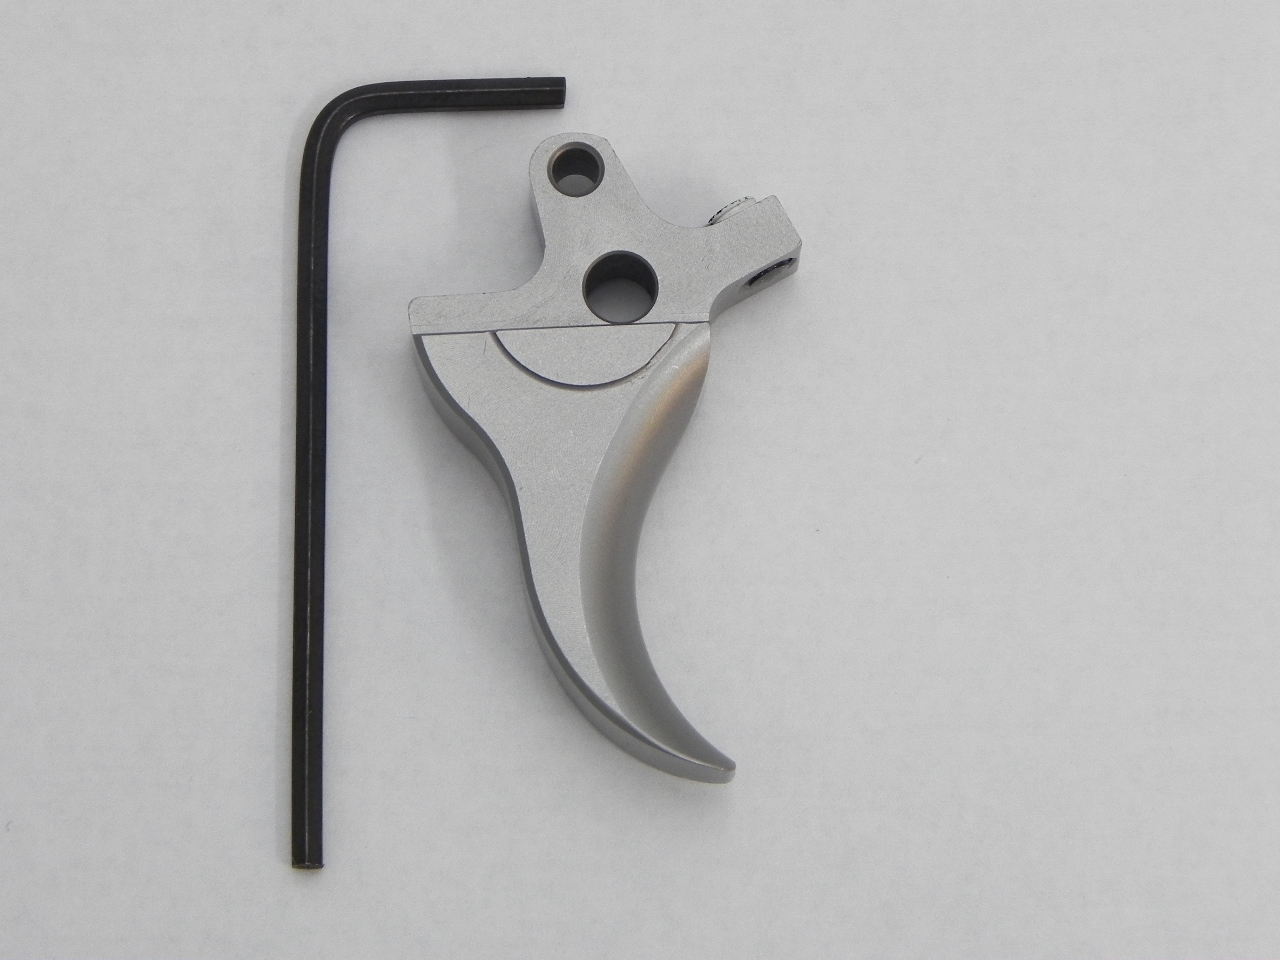 CS0723S - Sig Classic P Series Adjustable Trigger, Stainless Steel